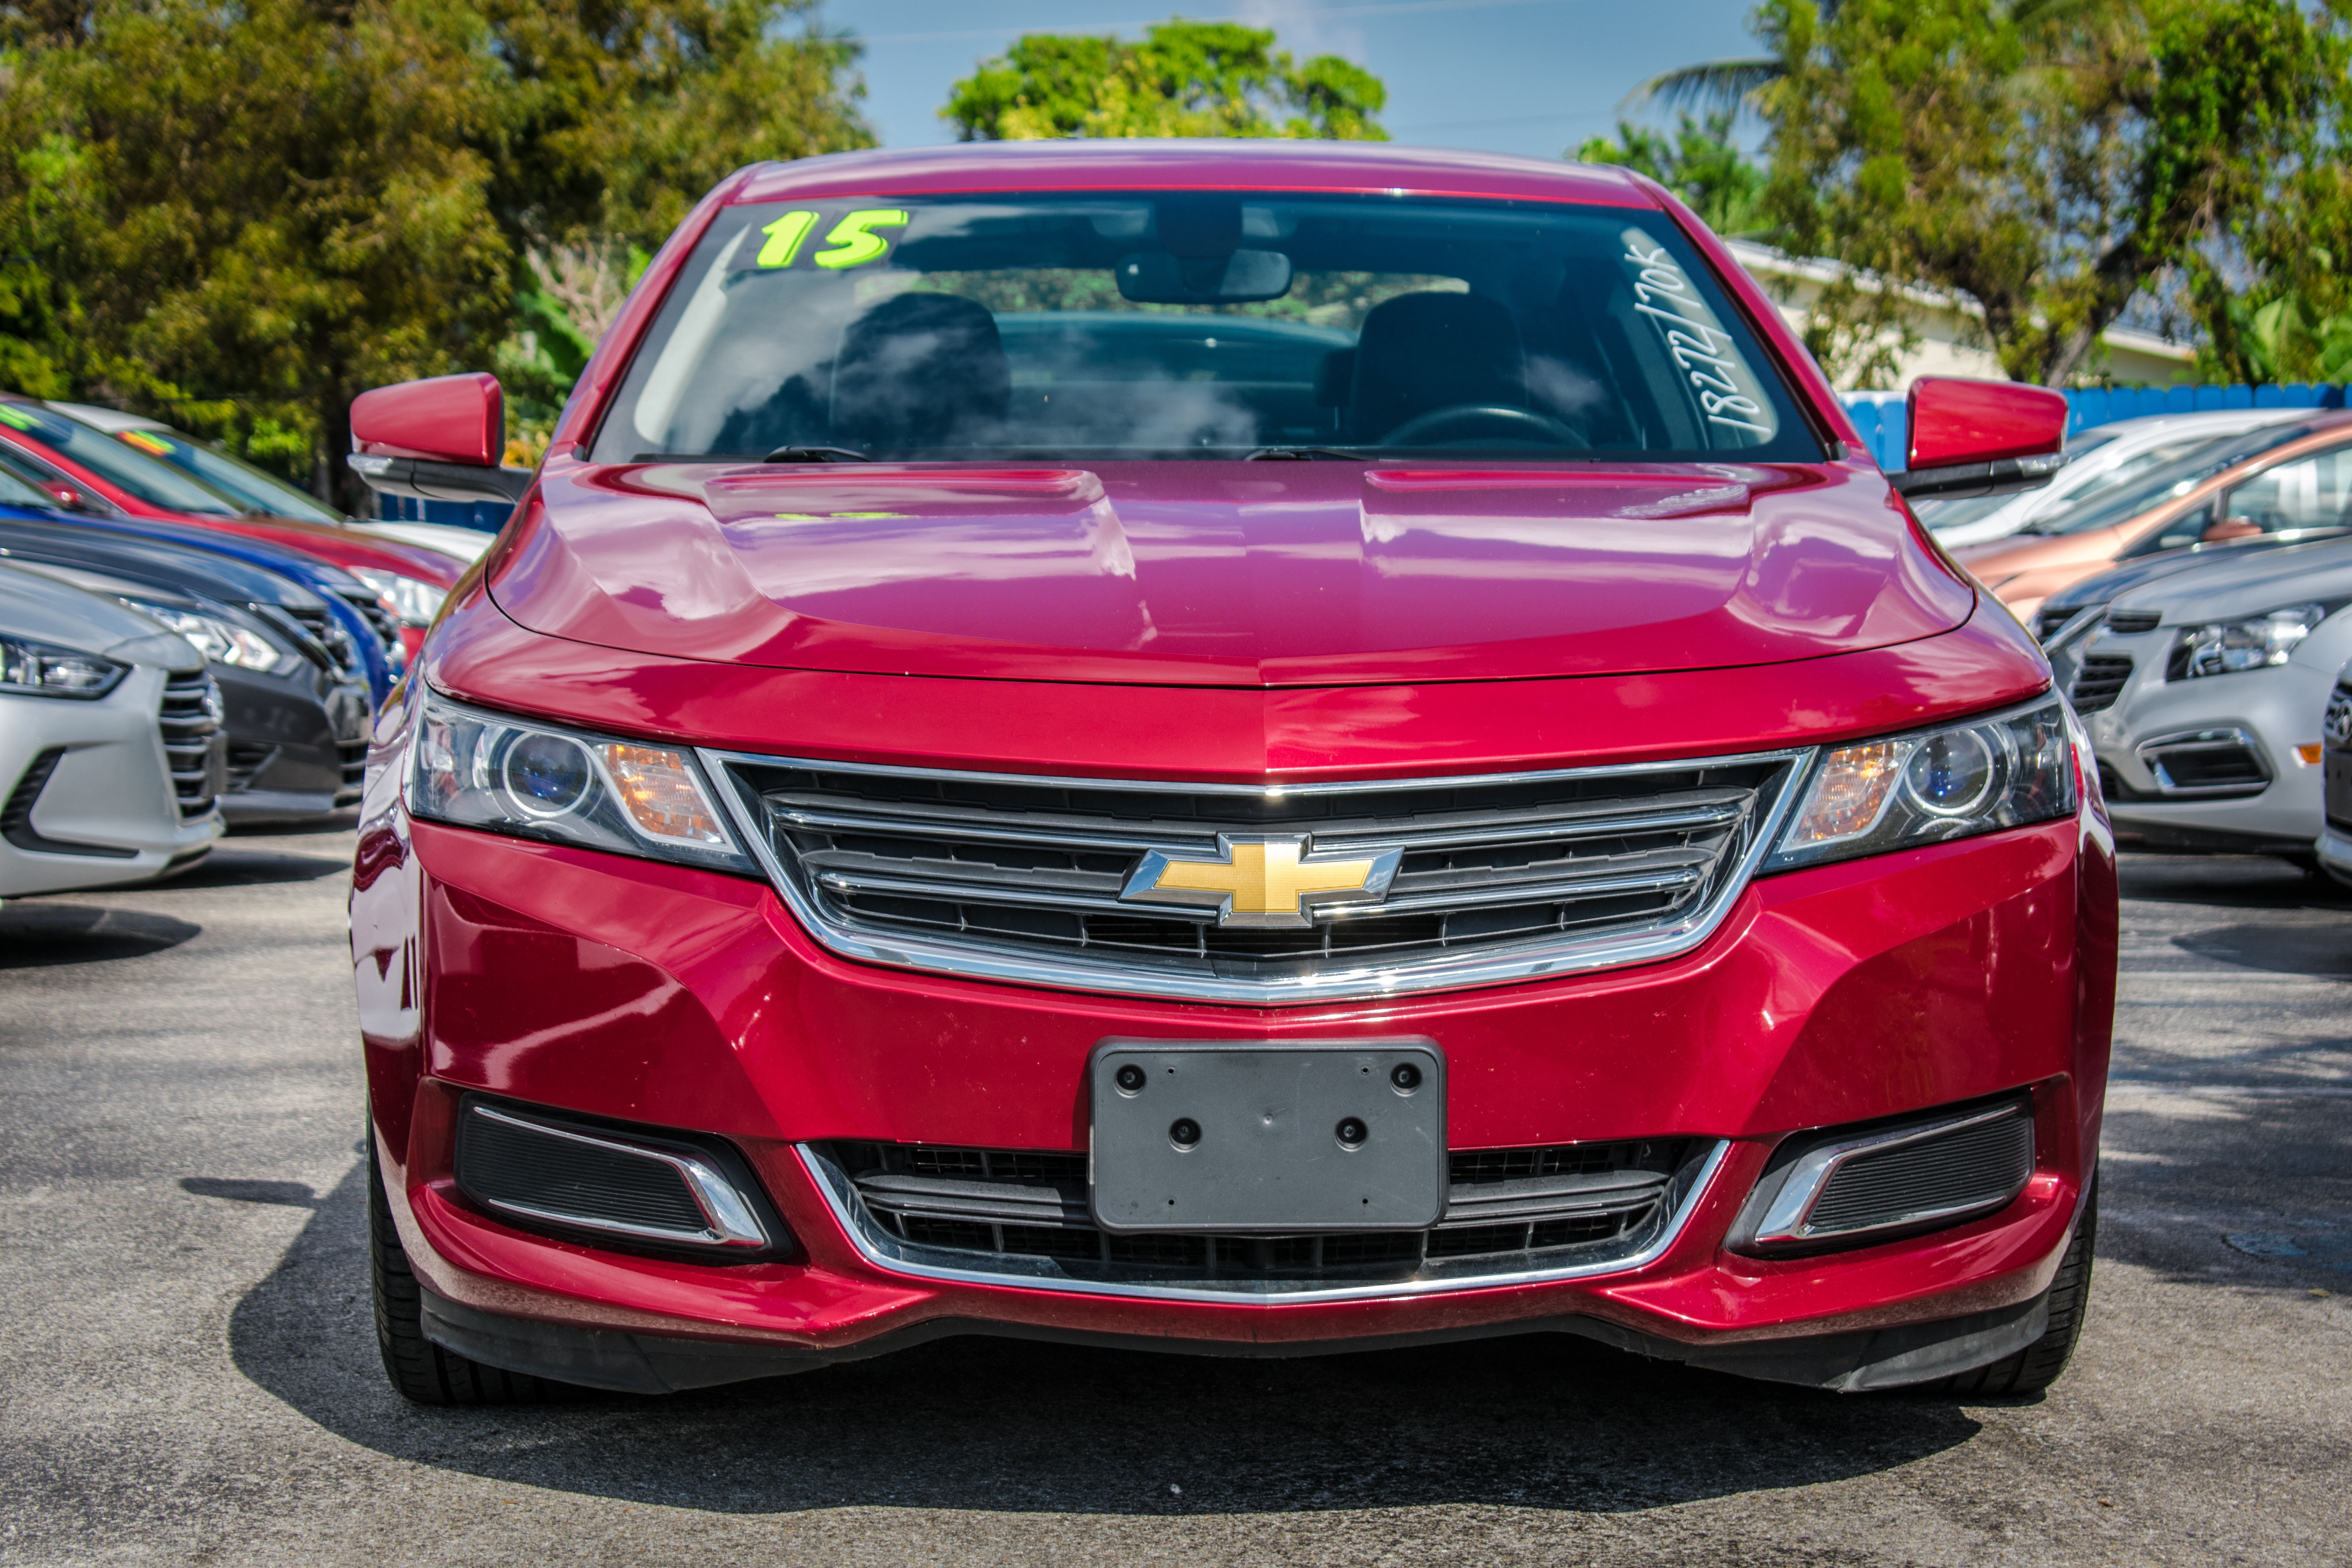 2017 Chevrolet Impala Lt We Can Approve You Fast Easy Simply